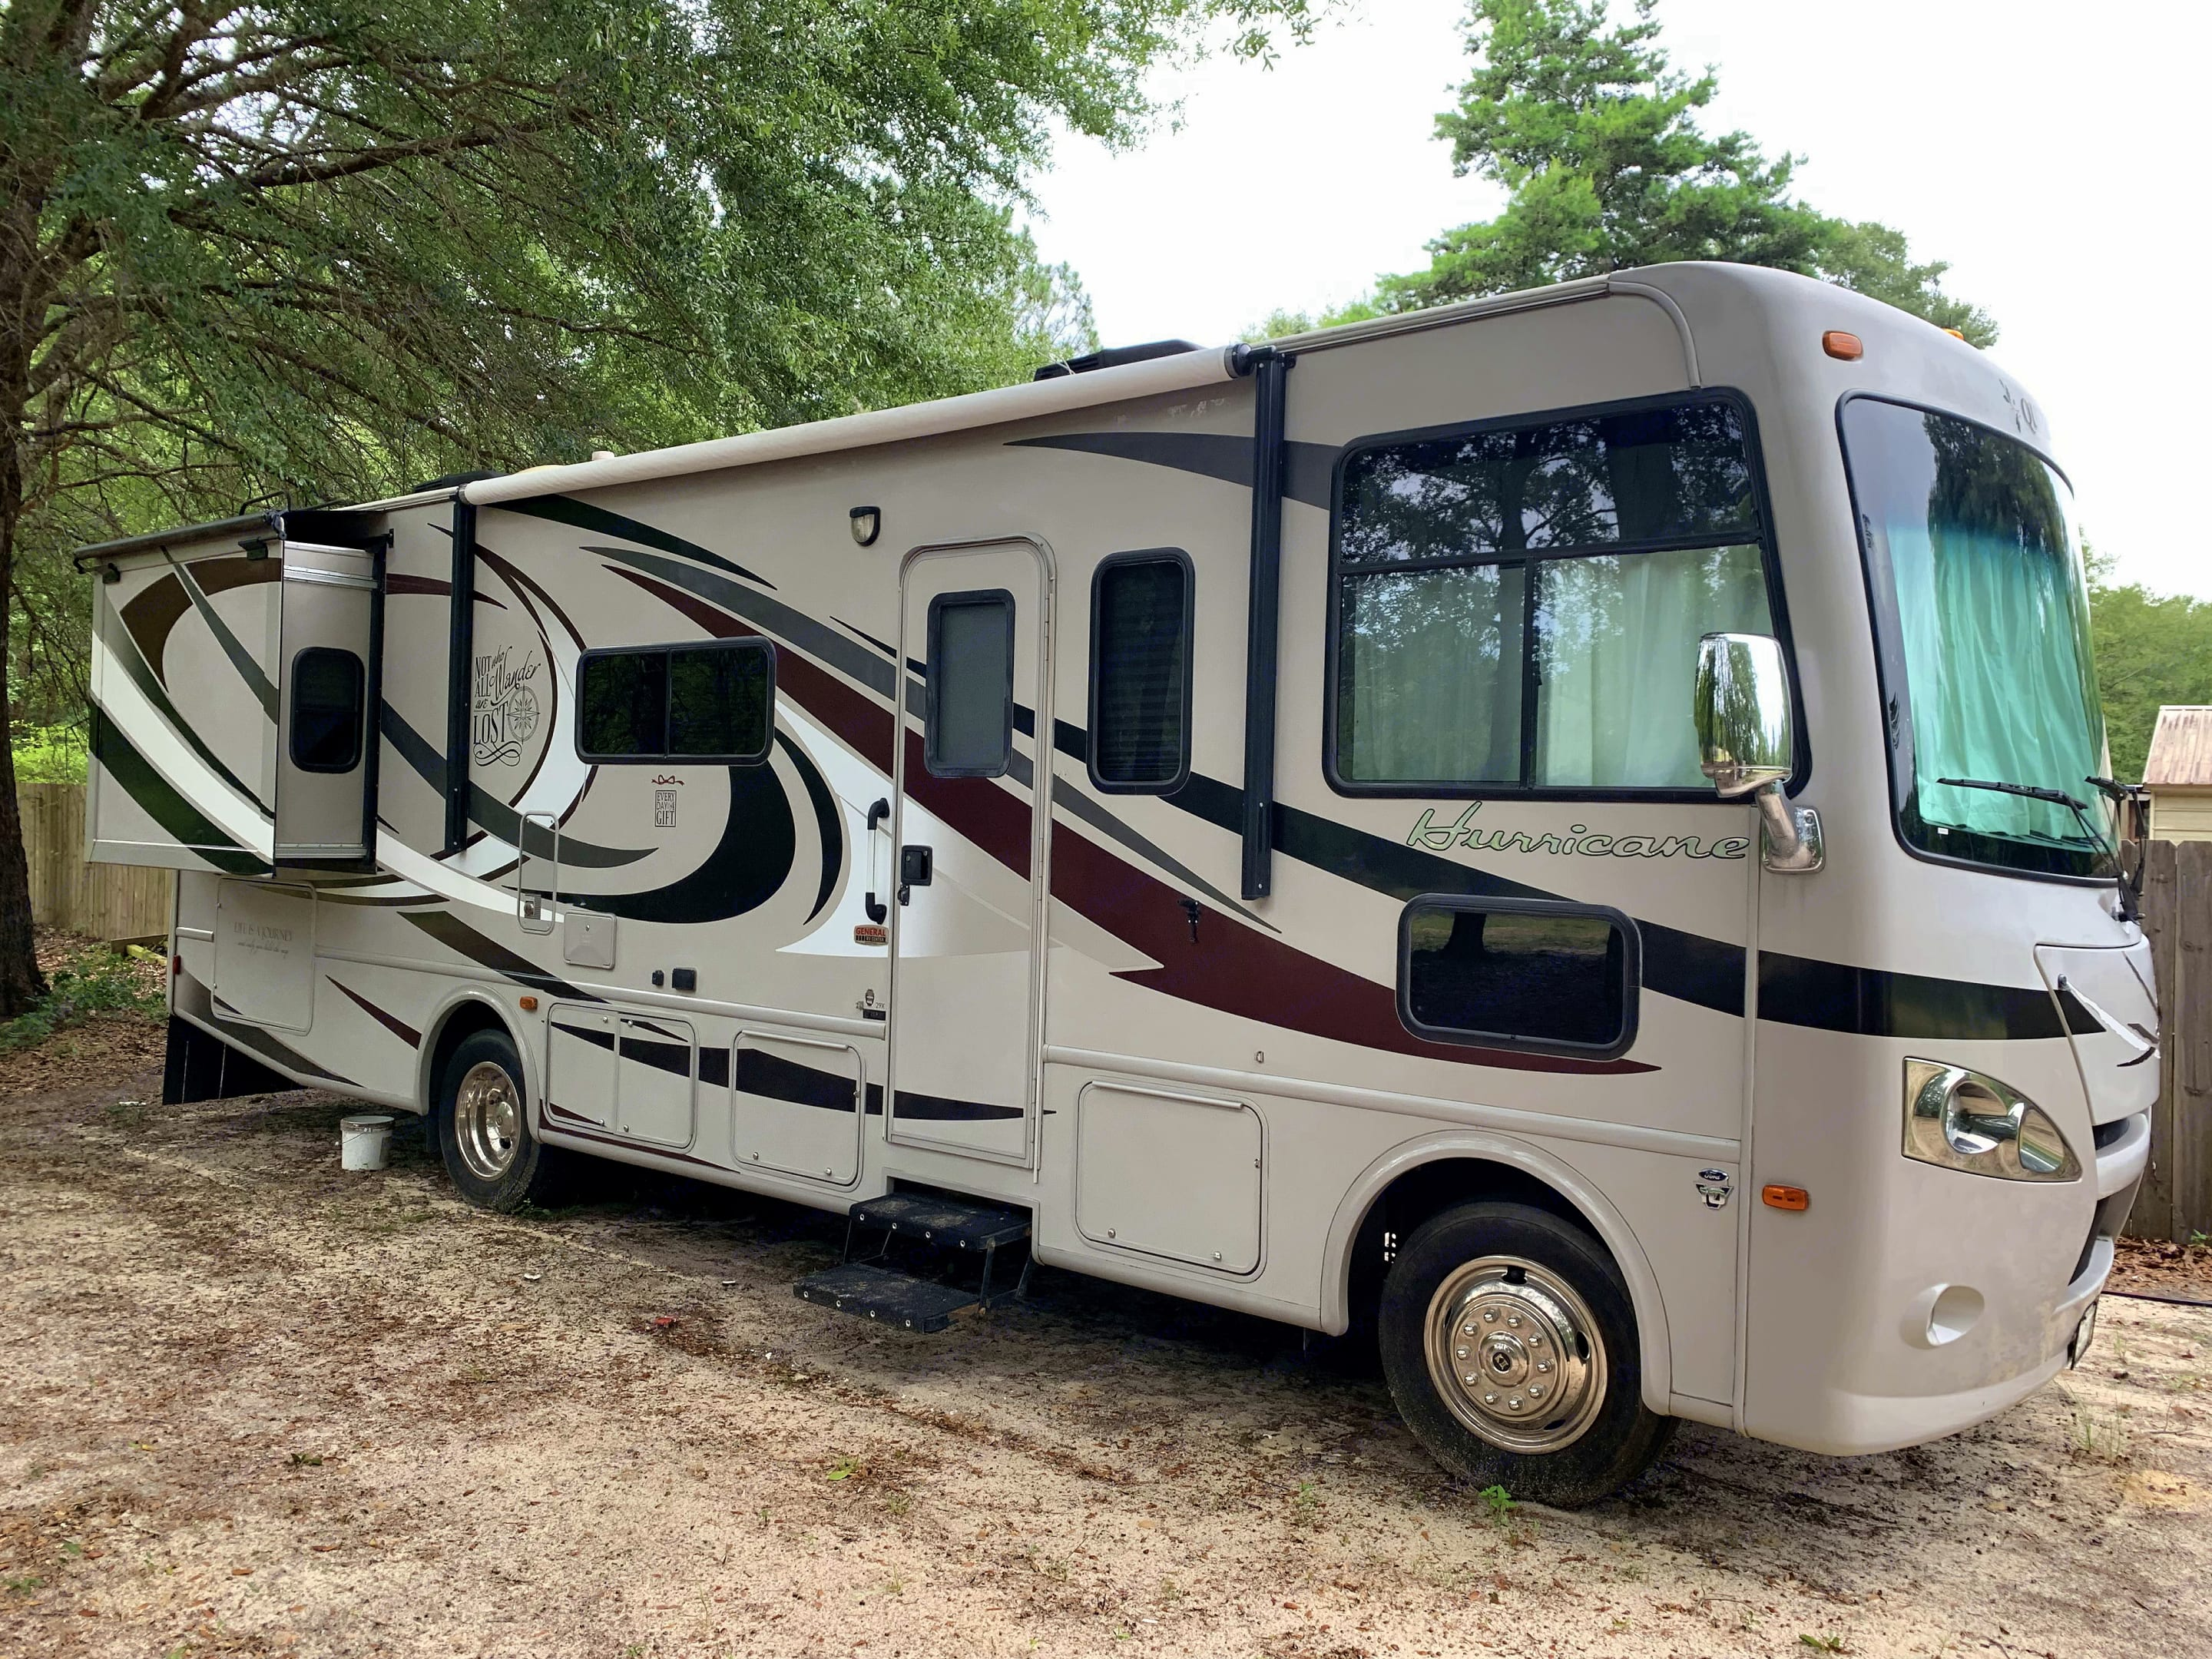 Stowage spaces (front to back) include twin chassis batteries, road hazard safety equipment, slide-out dining table.. Thor Motor Coach Hurricane 2013